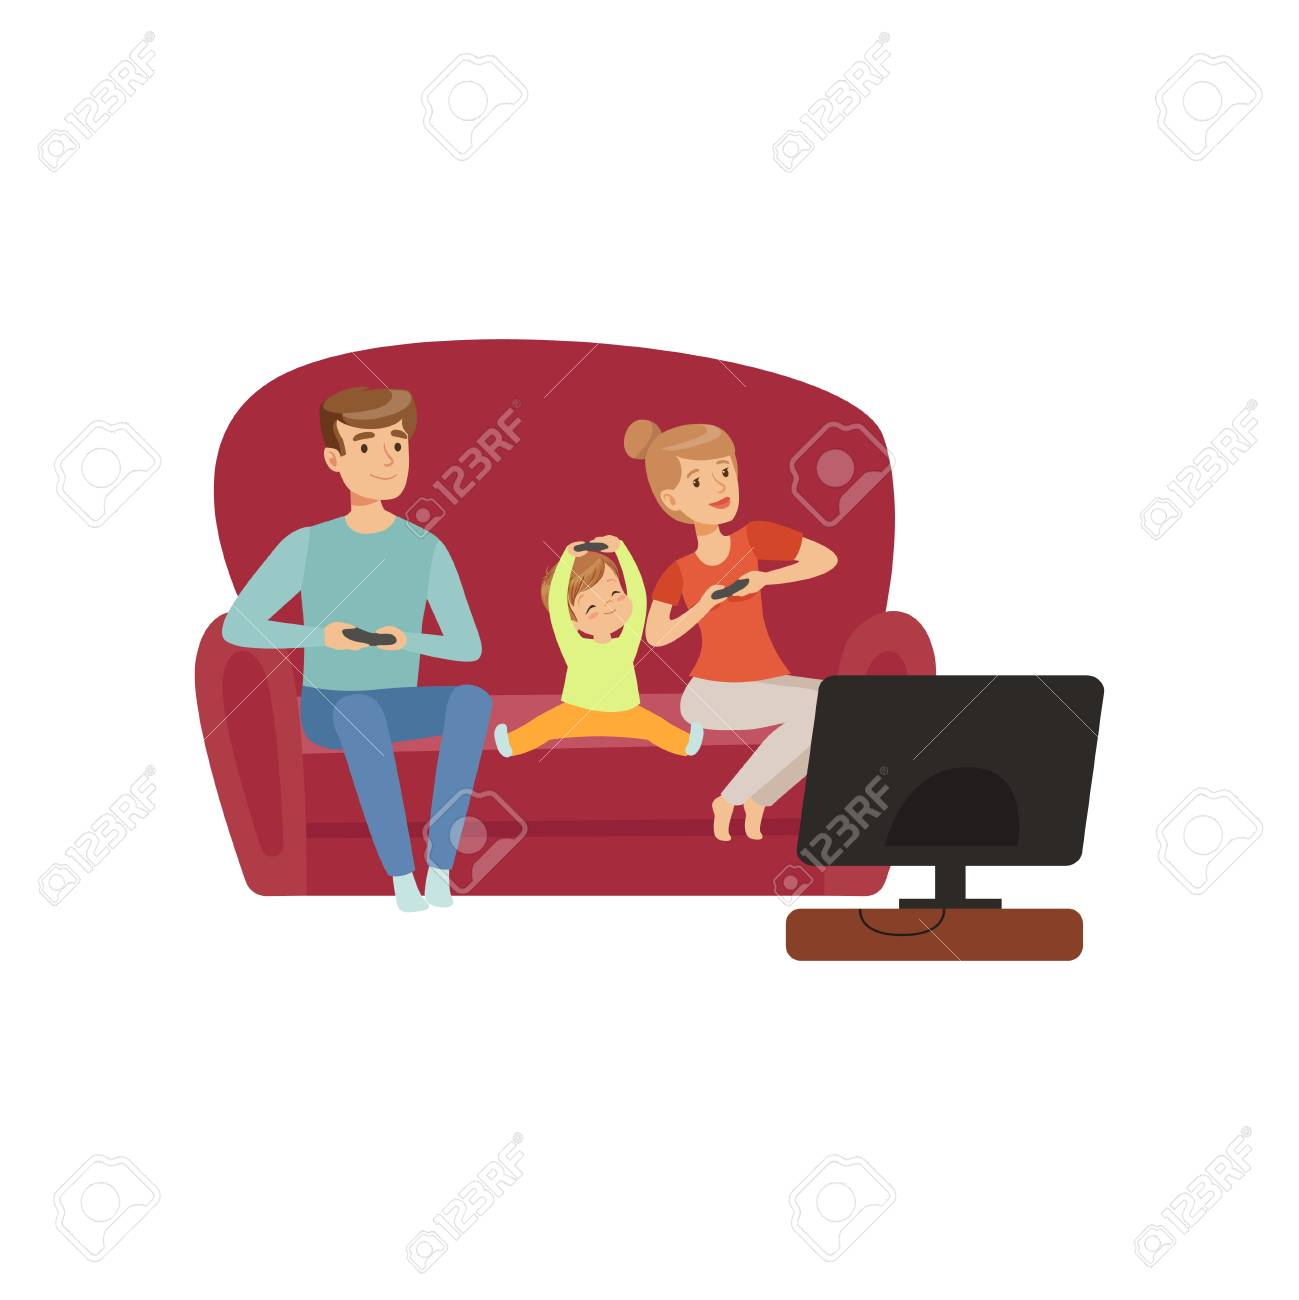 Mom, dad and their little son sitting on the sofa and watching TV, happy family and parenting concept vector Illustration on a white background - 103180833